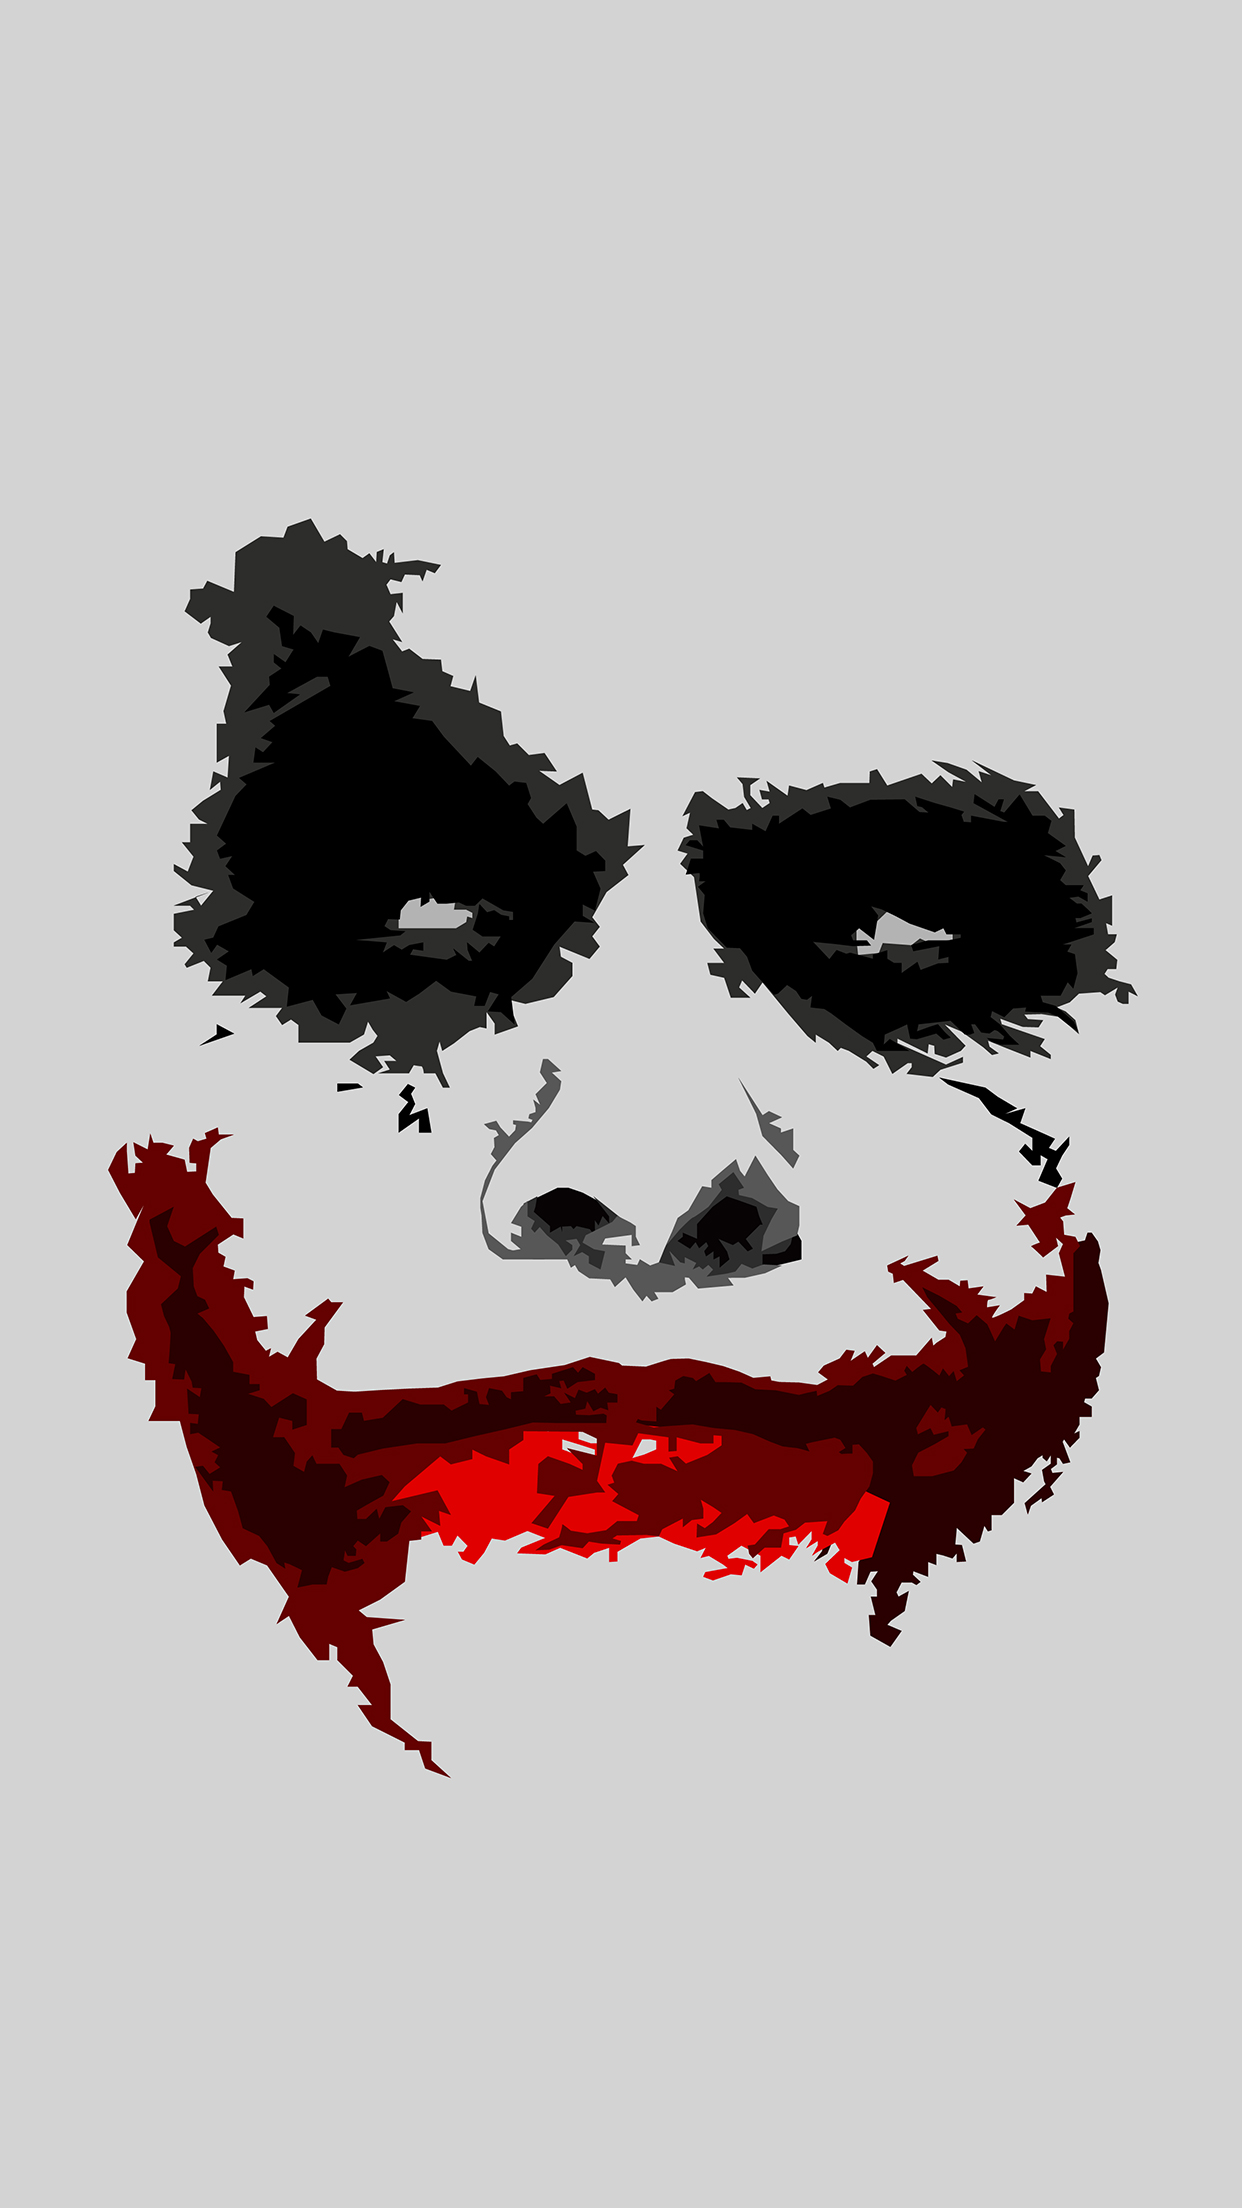 Joker iPhone 6 Wallpaper - WallpaperSafari